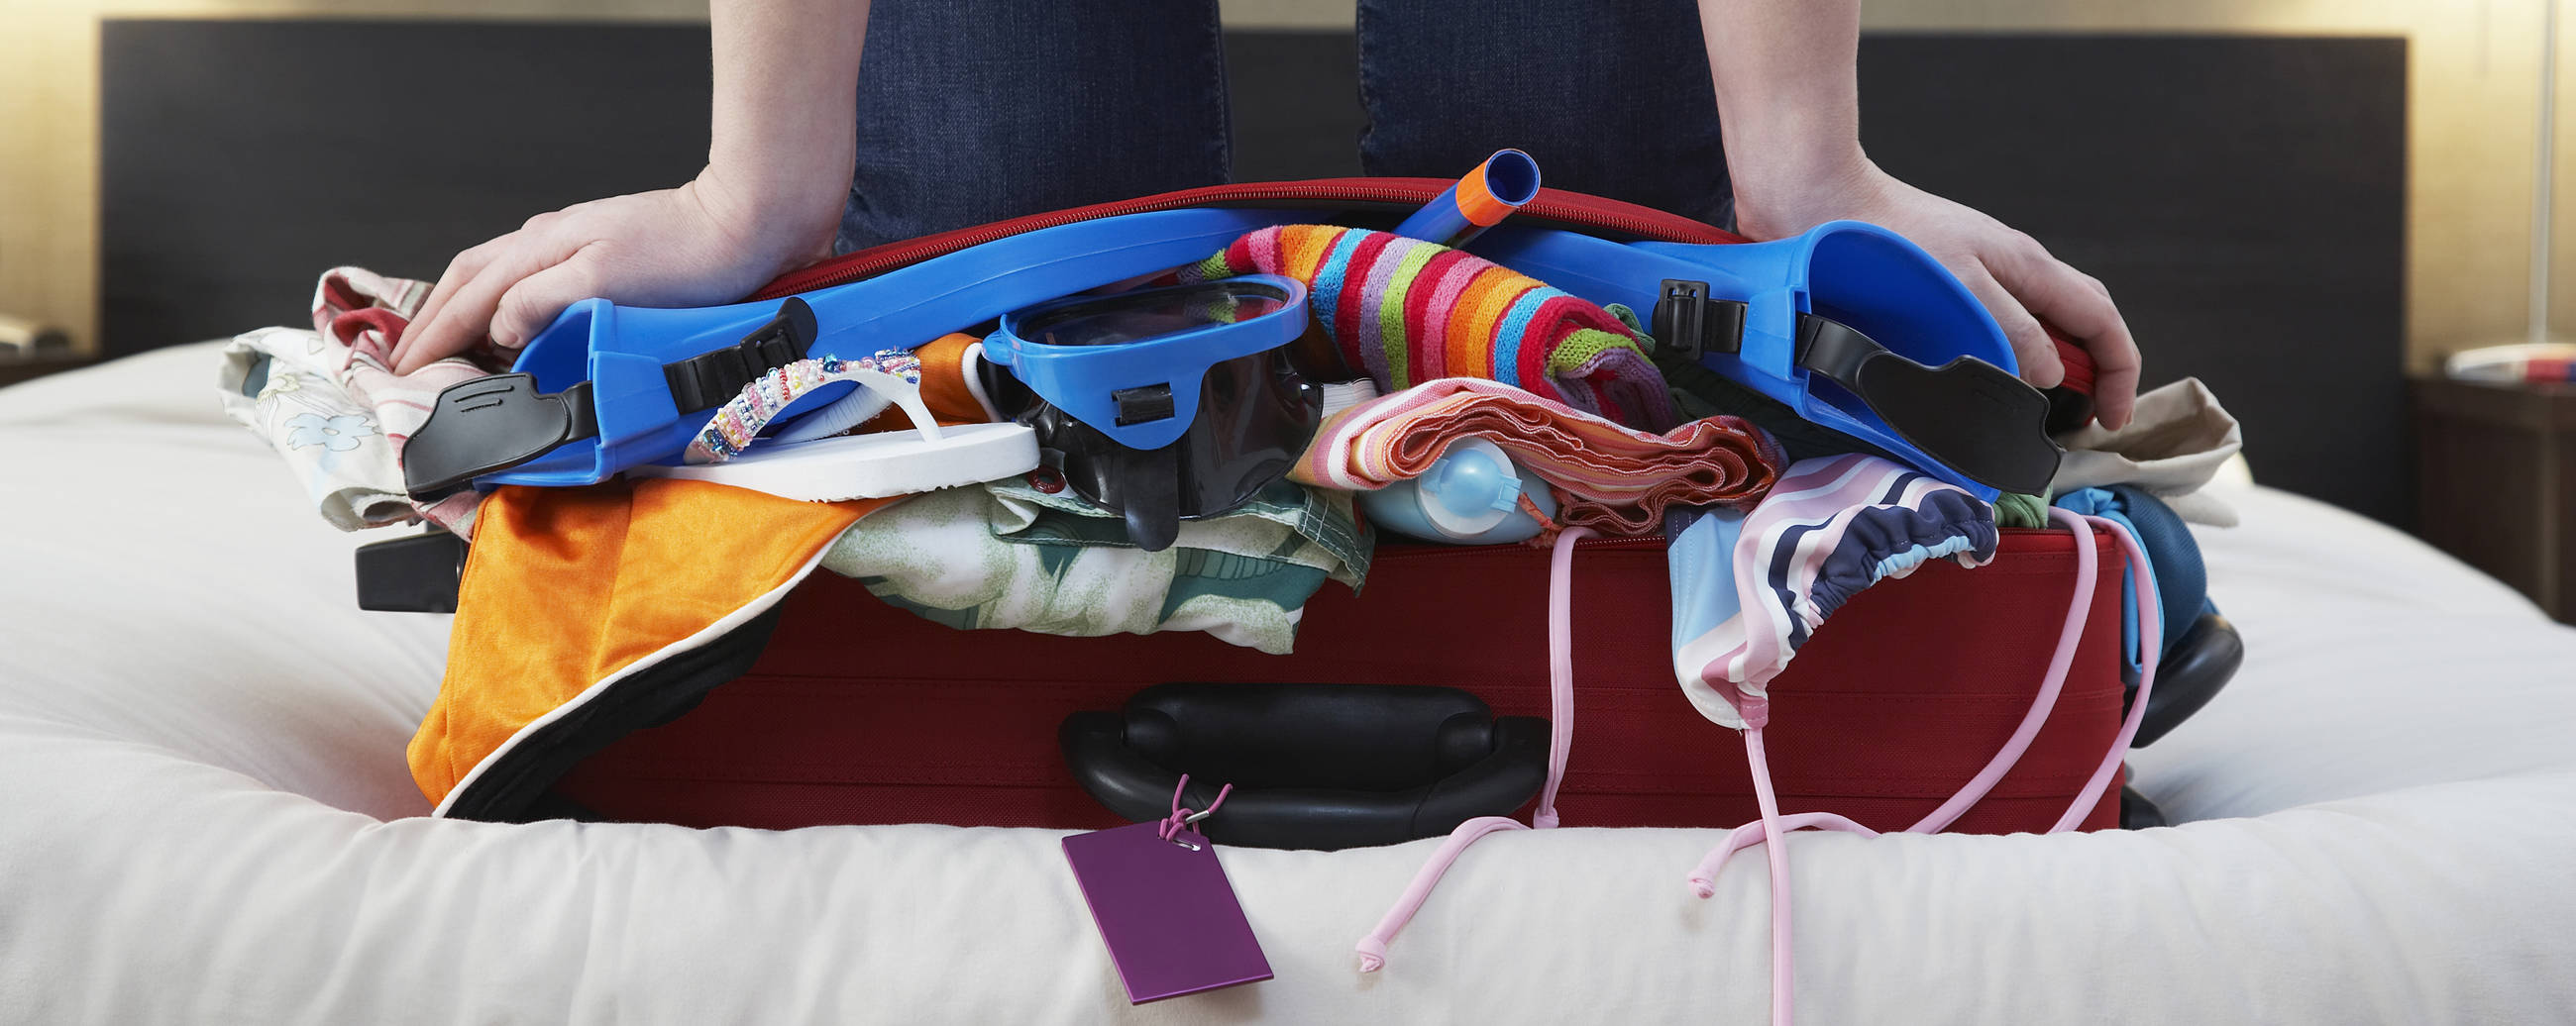 10-Ingenious-Ways-To-Beat-The-Baggage-Restrictions-This-Holiday